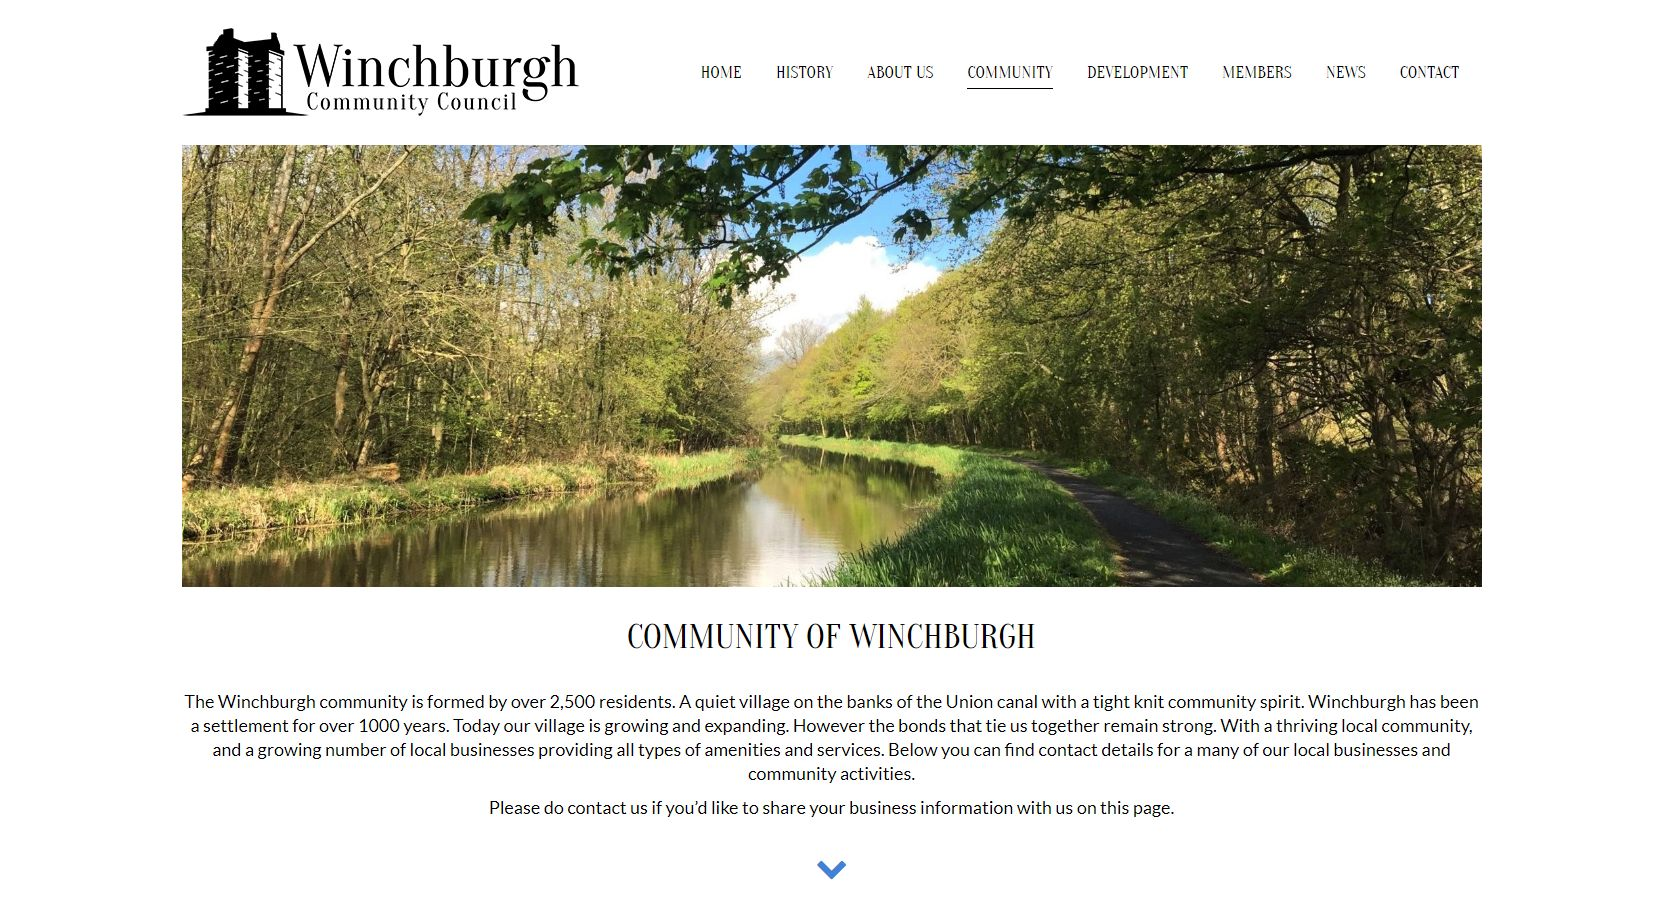 Winchburgh Community Council Community